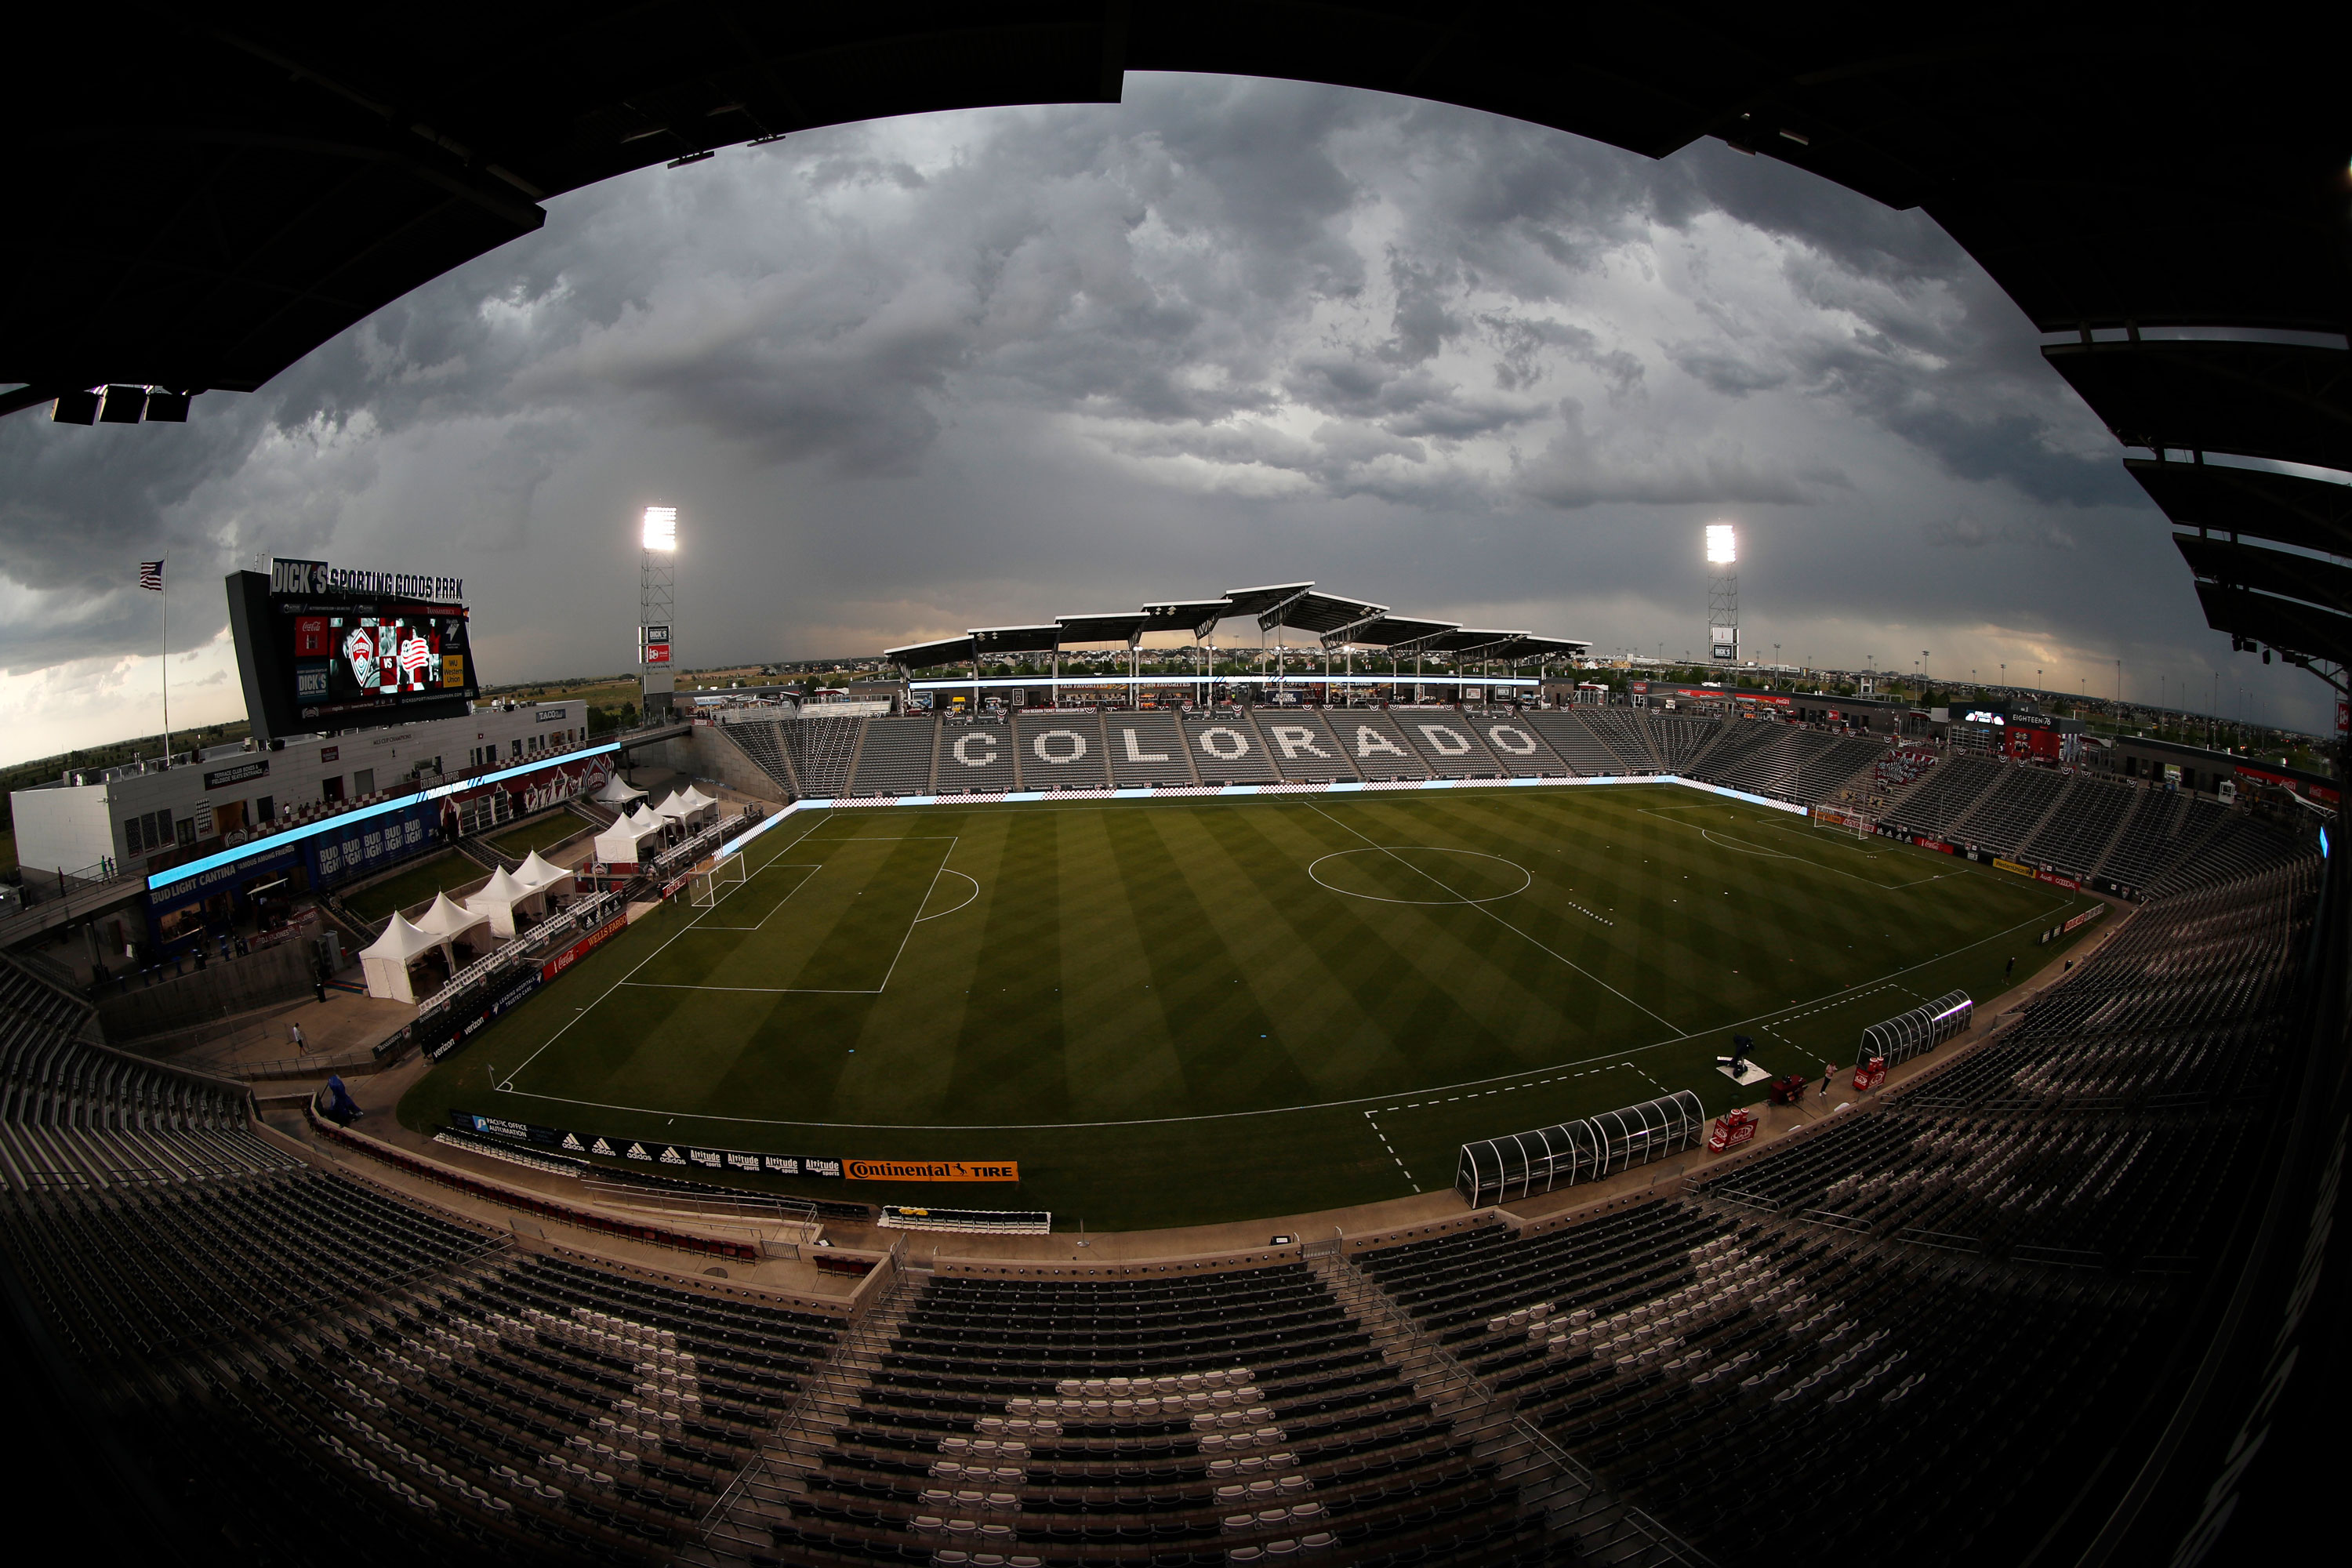 As viewed through a fisheye lens, storm clouds build over the stadium before an MLS soccer match between the New England Revolution and the Colorado Rapids on Thursday, July 4, 2019, in Commerce City, Colo.